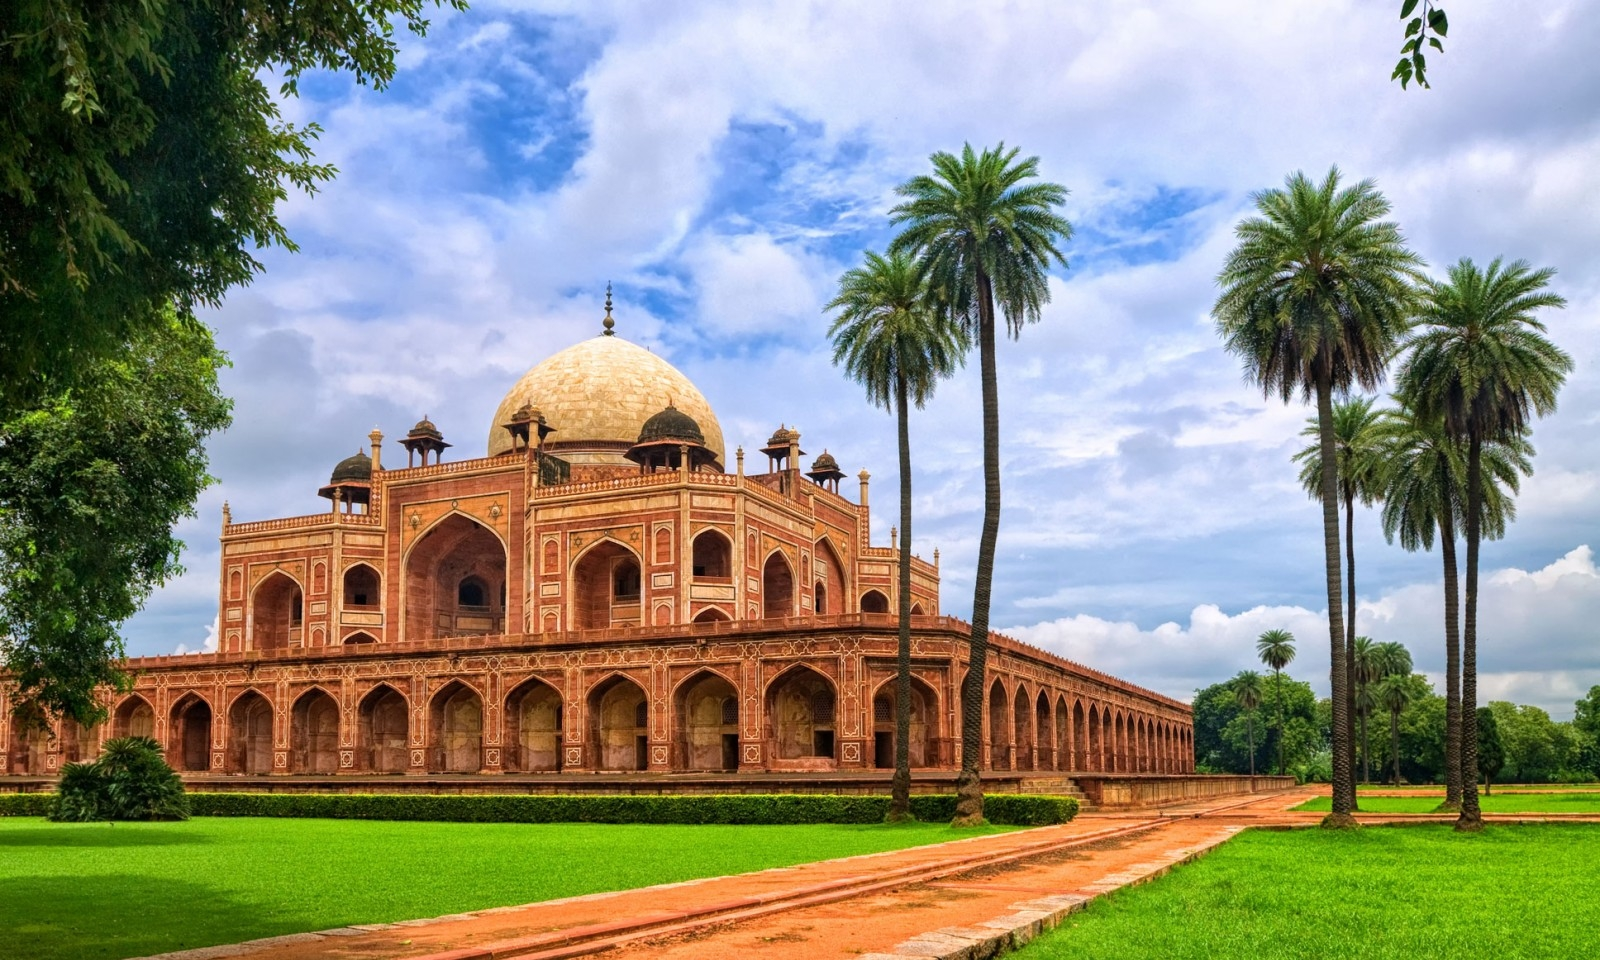 Delhi - Where the old meets the new. Rikshaw rides and the Presidential Palace. Experience the hustle and bustle of the main bazaar in the heart of the city home to 19 million people.